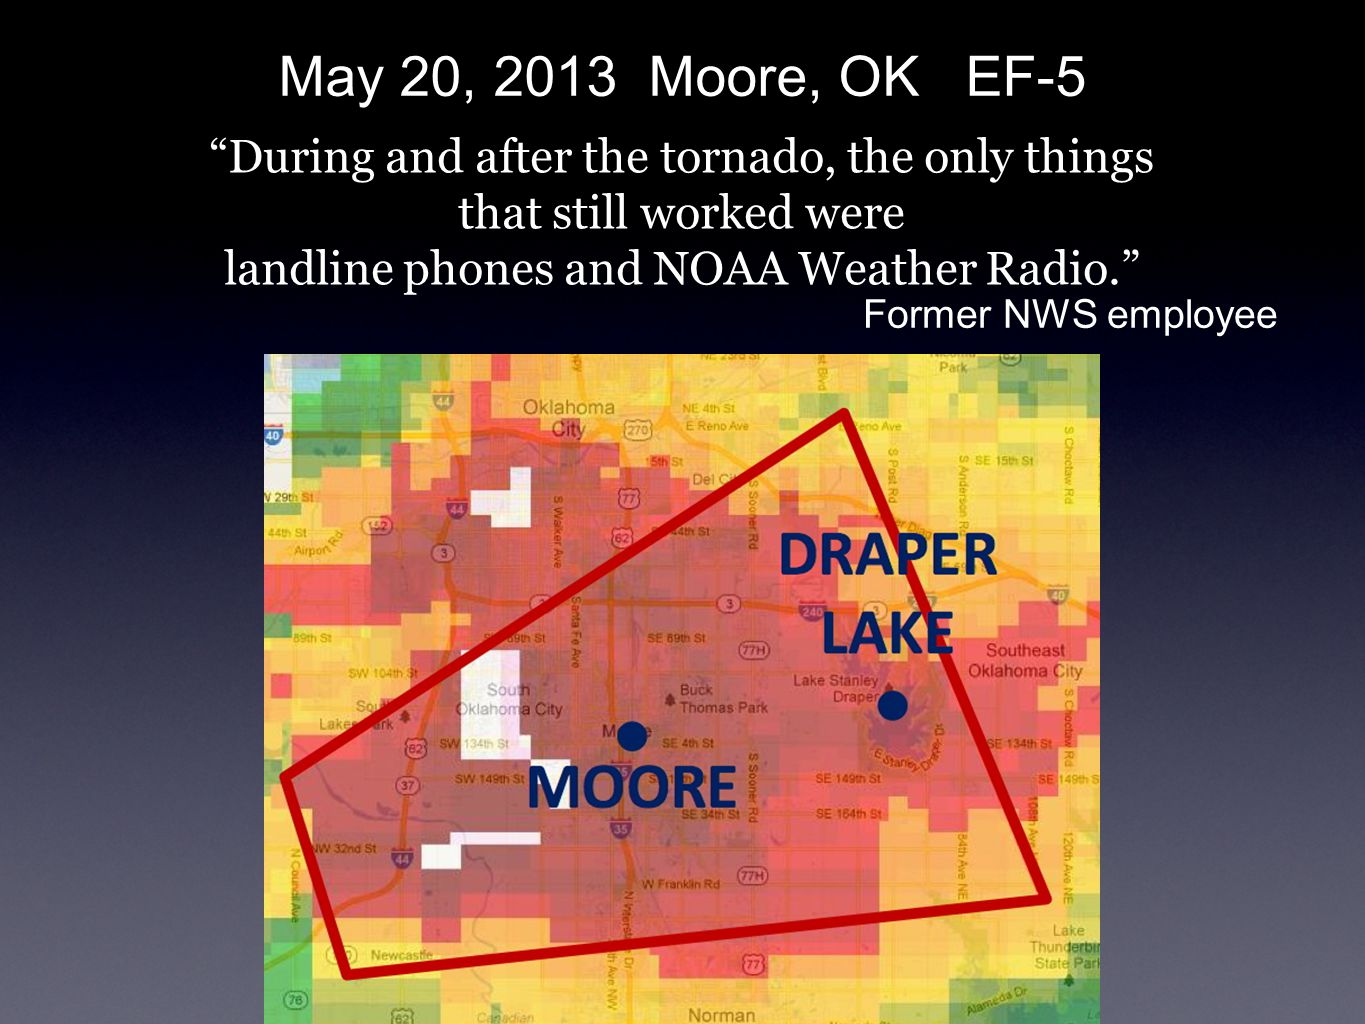 During and after the tornado, the only things that still worked were landline phones and NOAA Weather Radio. May 20, 2013 Moore, OK EF-5 Former NWS employee